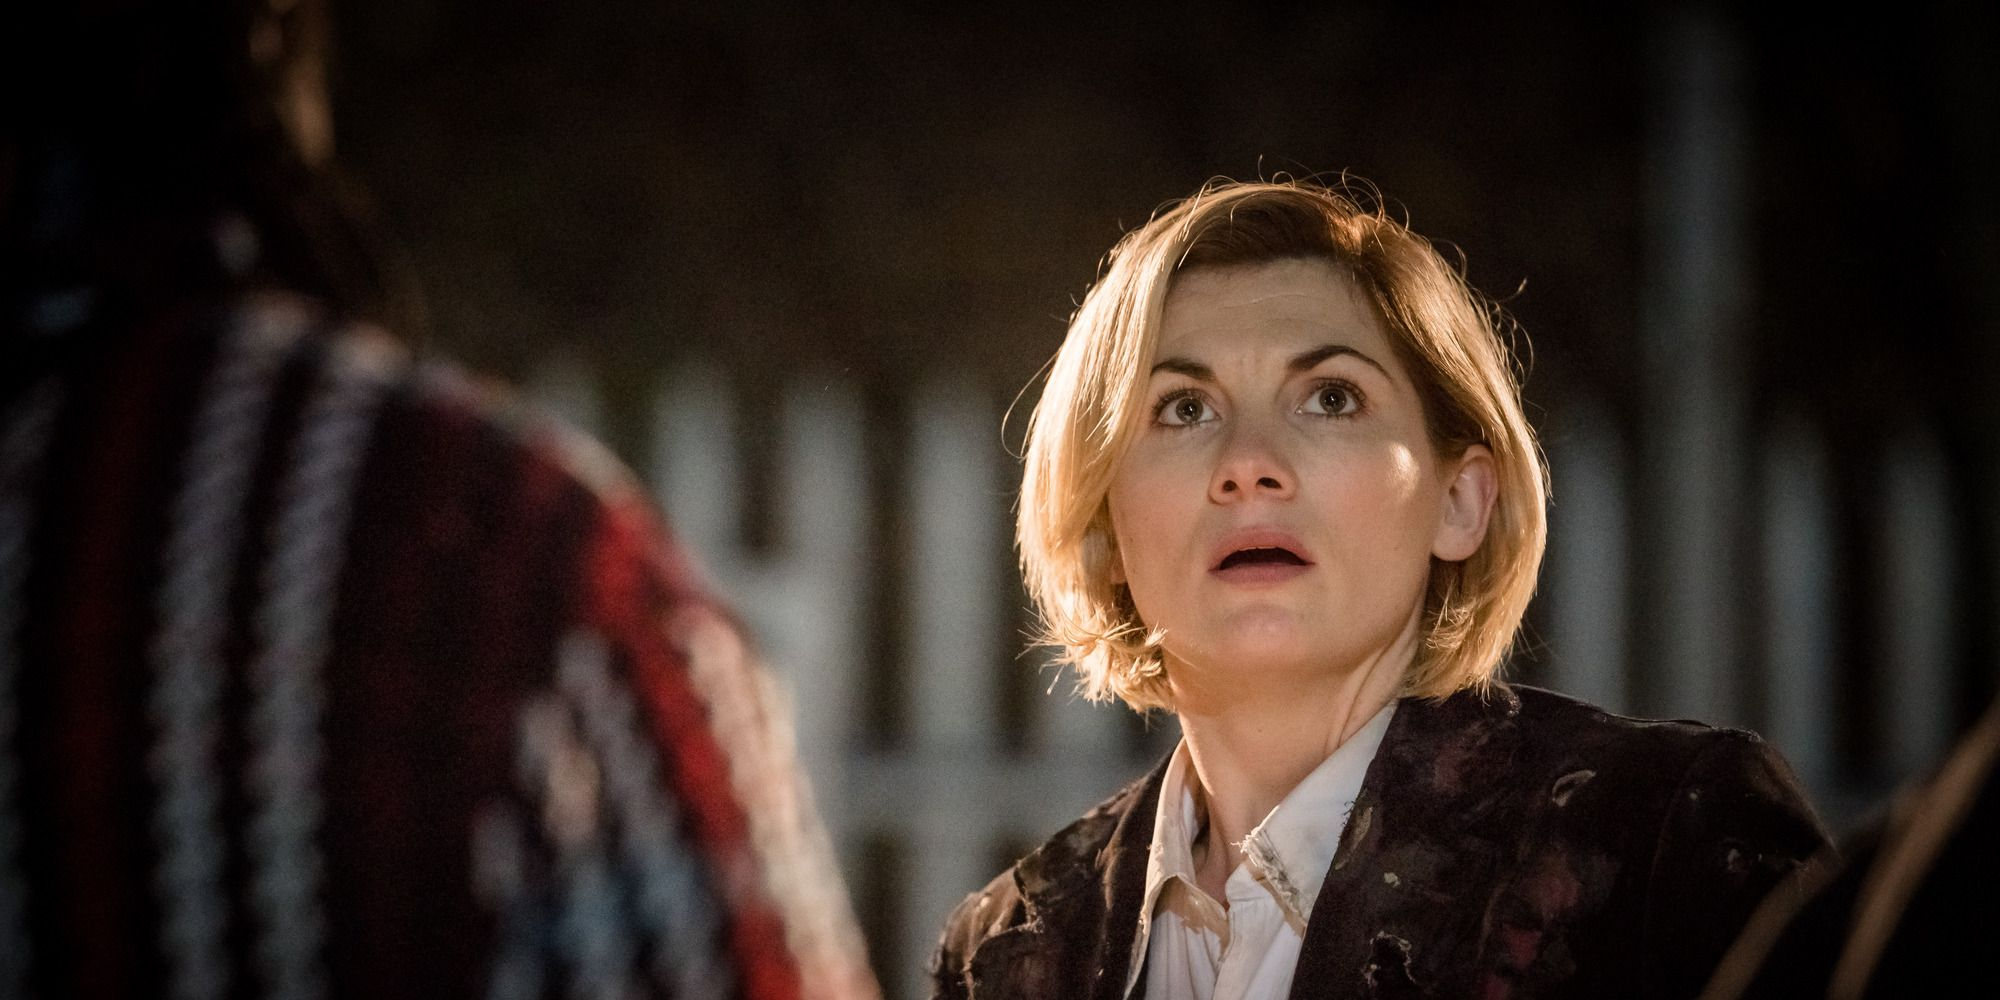 Doctor Who series 11, episode 1